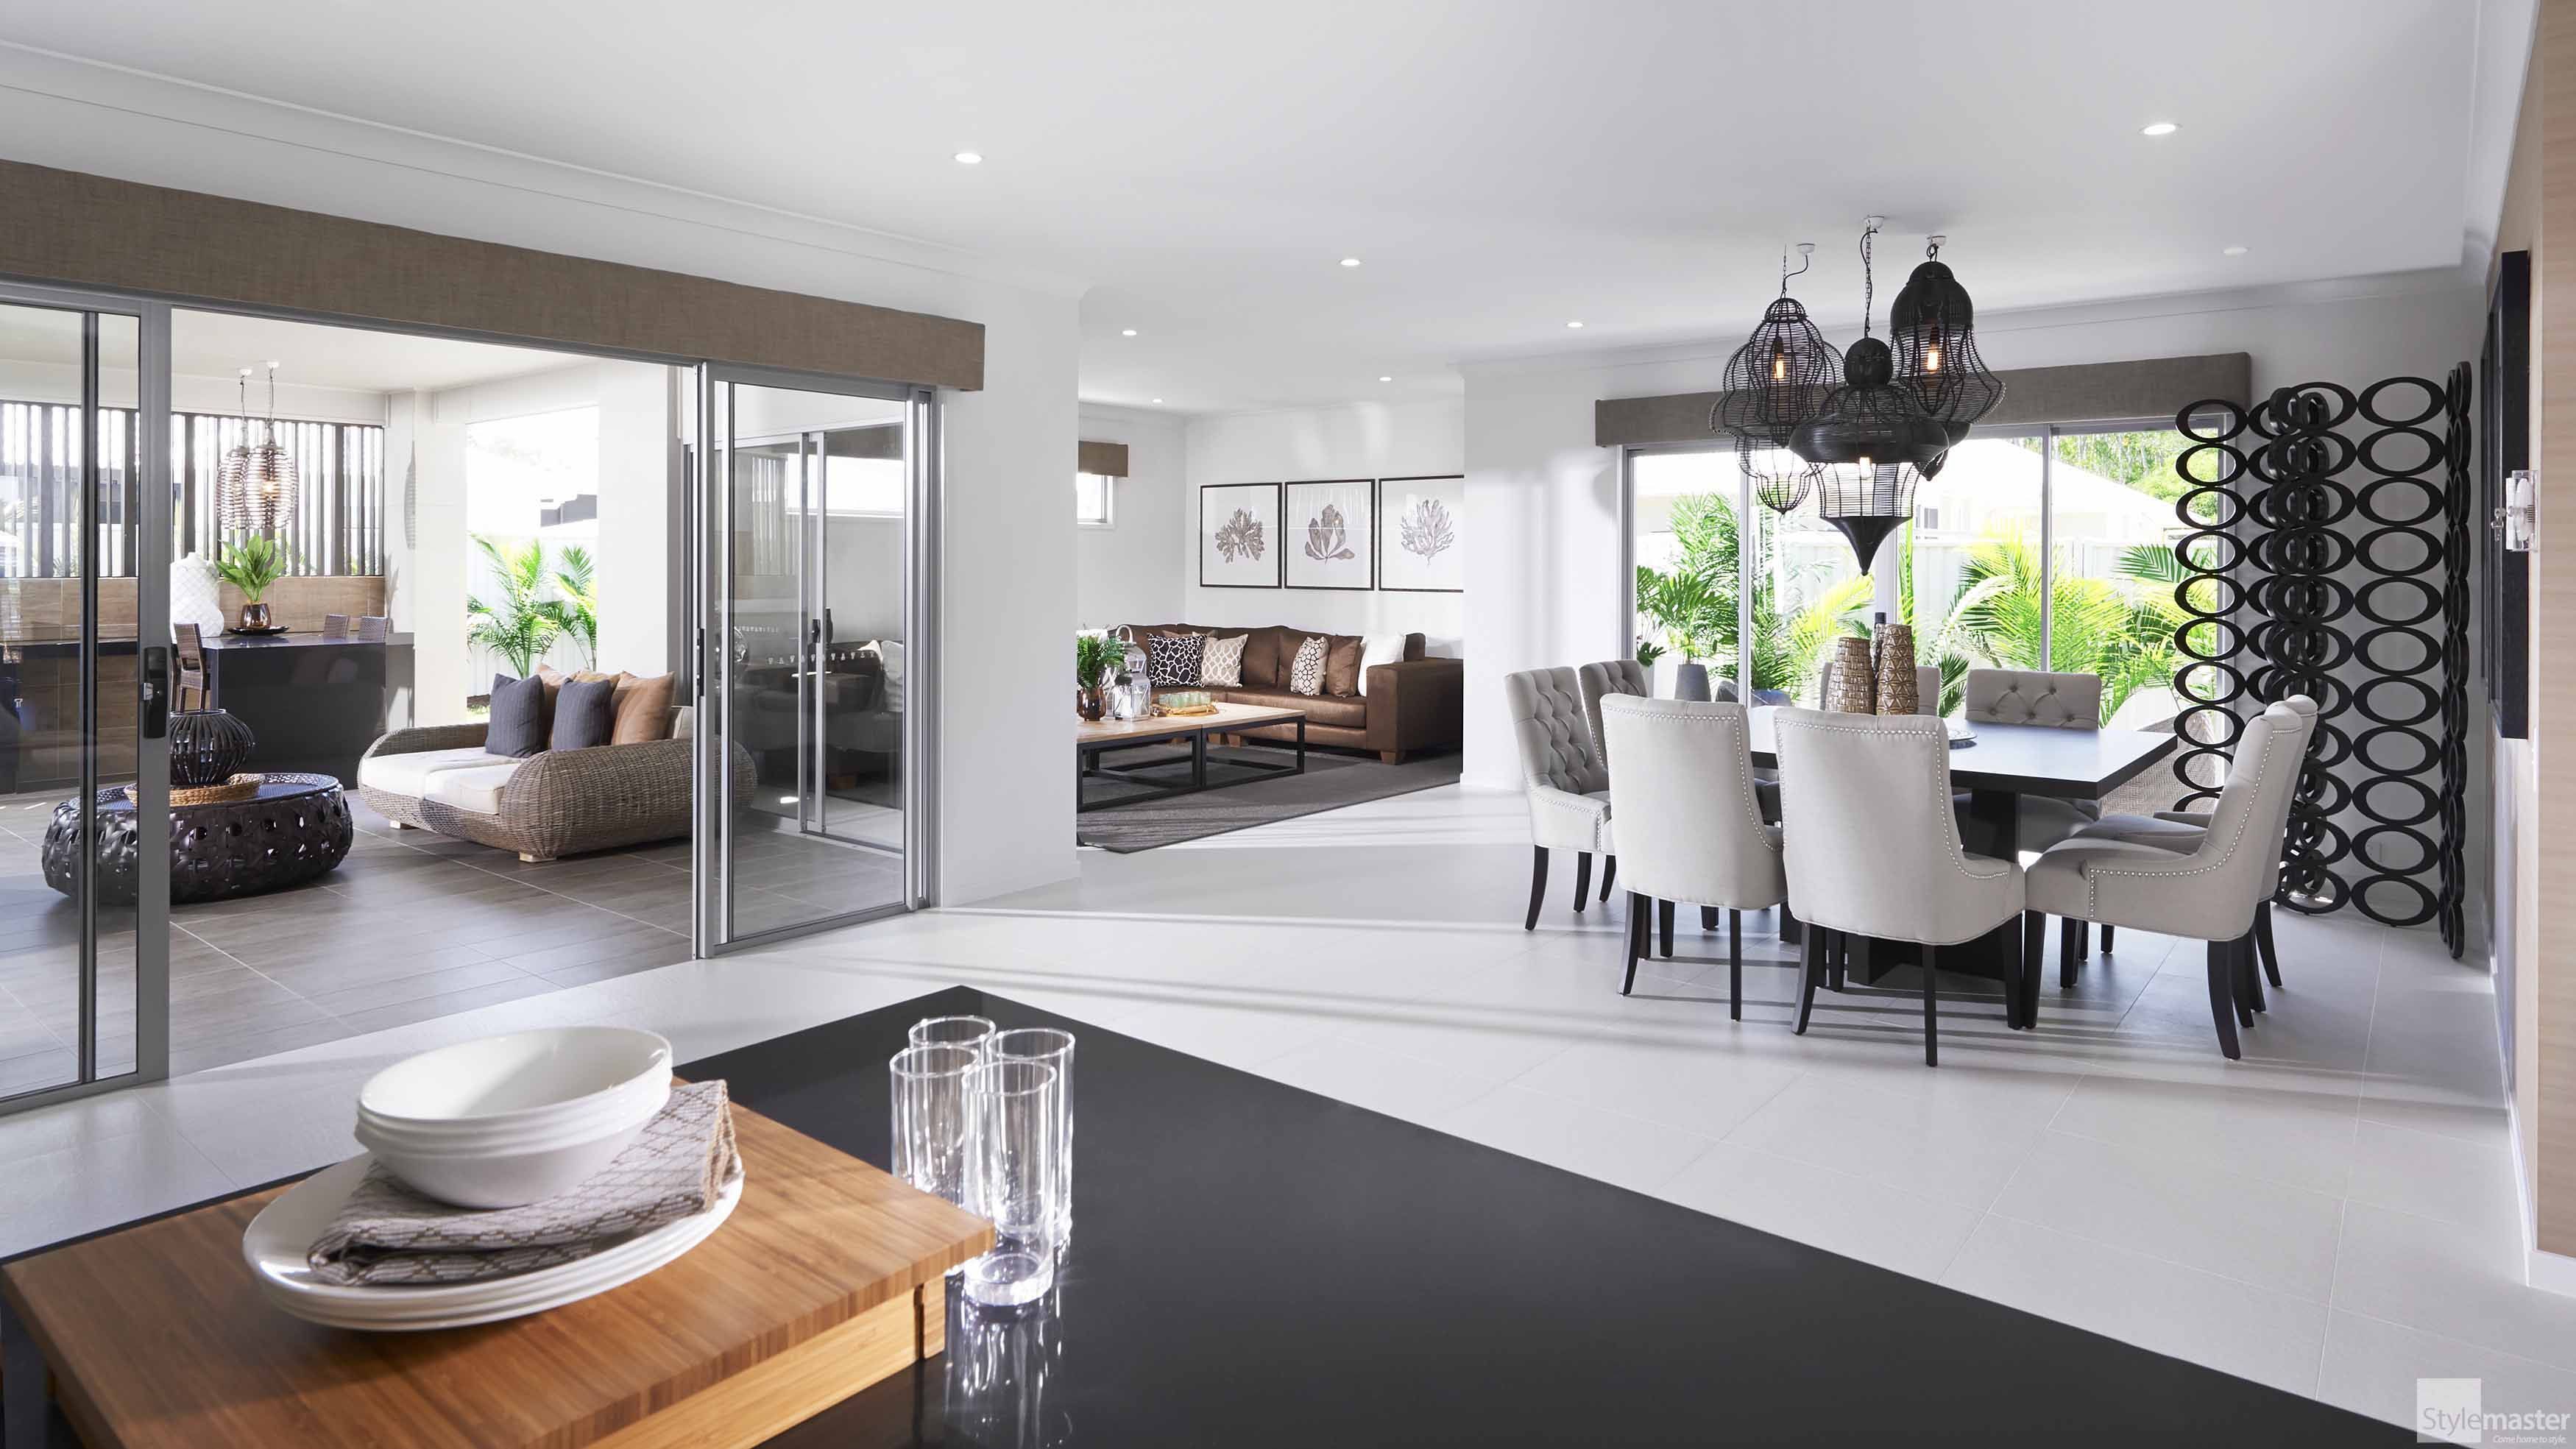 Seamless indoor outdoor living in the Lakeview by ... on Seamless Indoor Outdoor Living id=42877